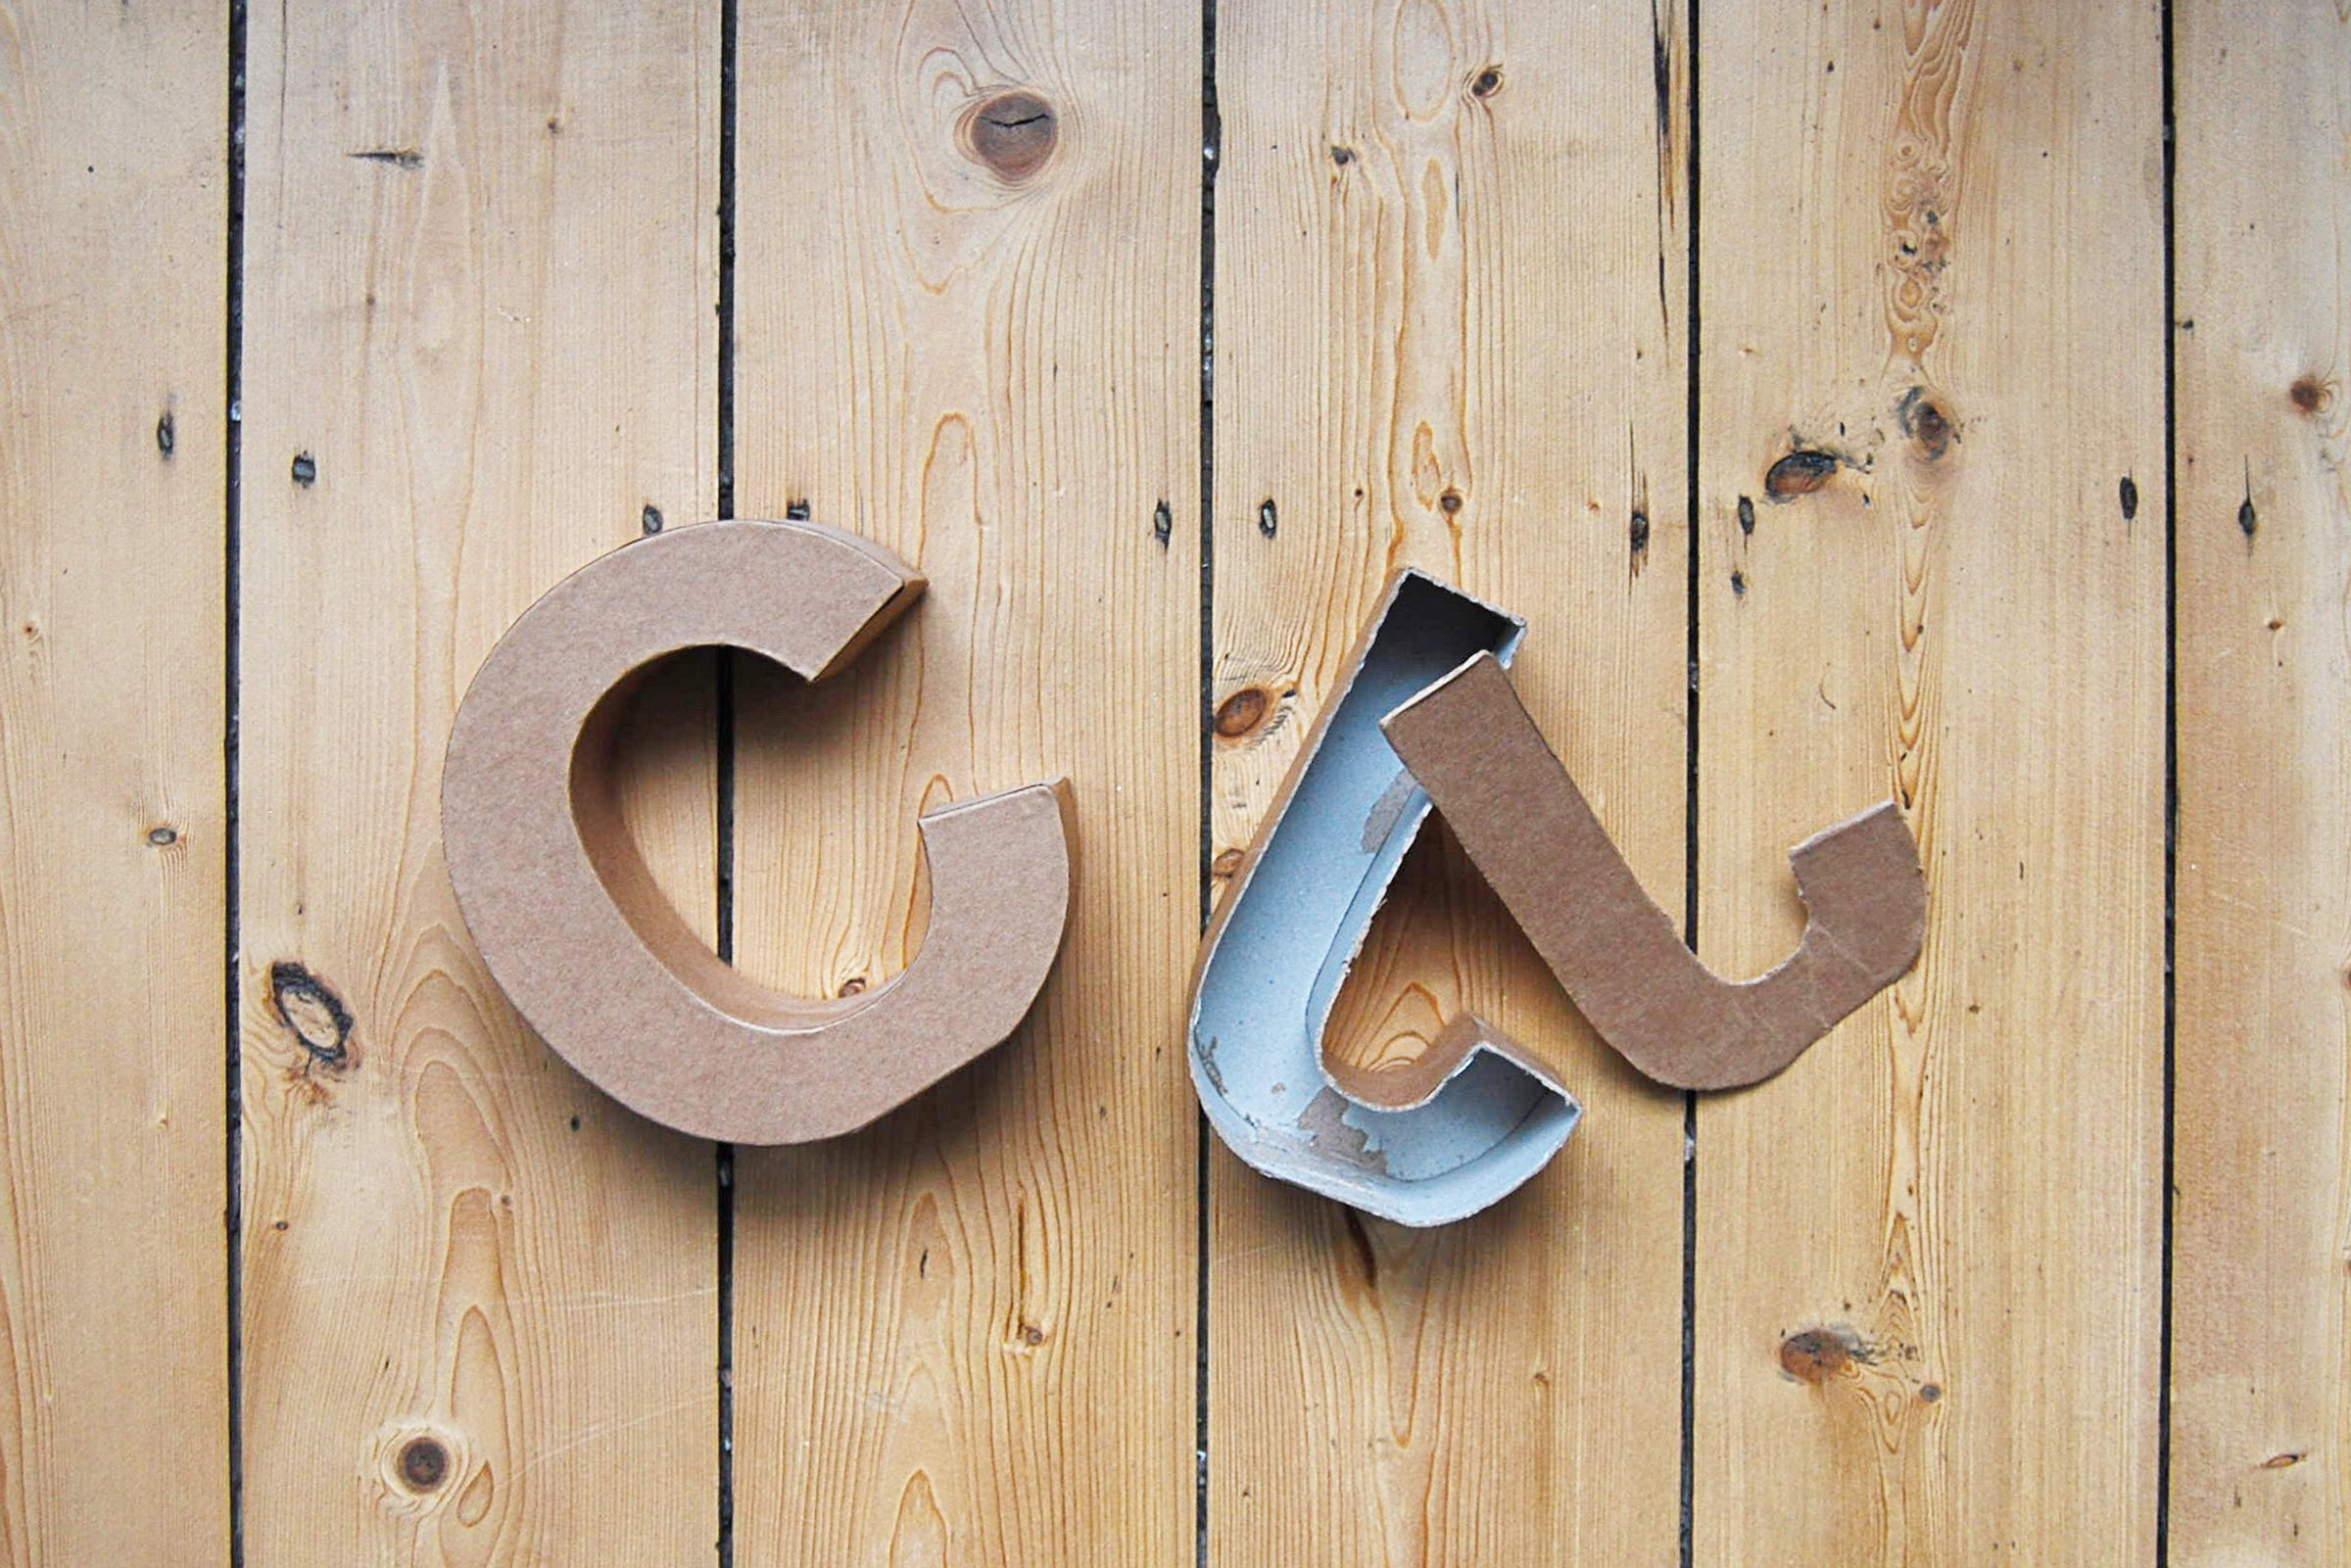 DIY Concrete Letter Bookends - Mould | Little House On The Corner